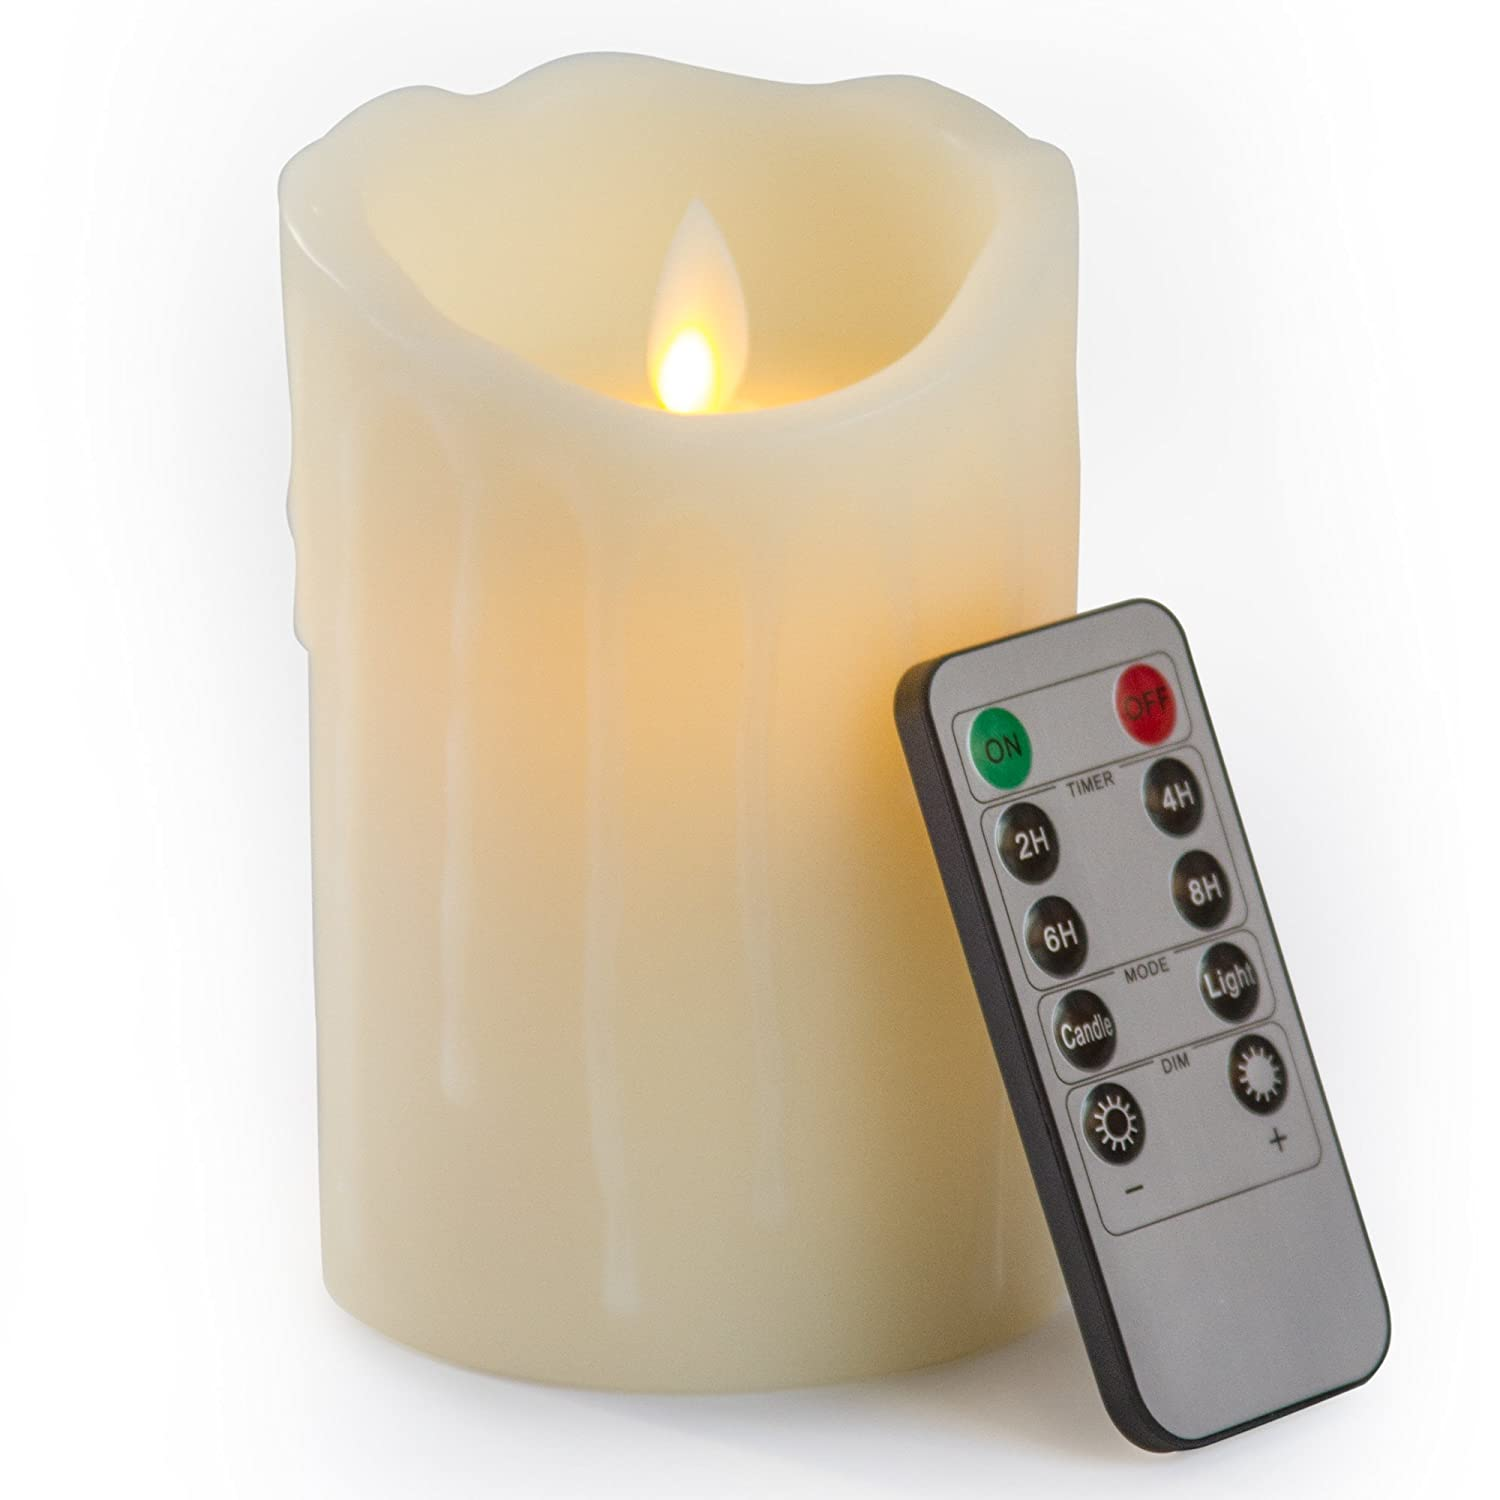 Gideon 5 Inch Flameless LED Candle Made with Real Wax and Dripping Style Design and Realistic Flickering Candle Motion Includes Remote Control Vanilla Scented